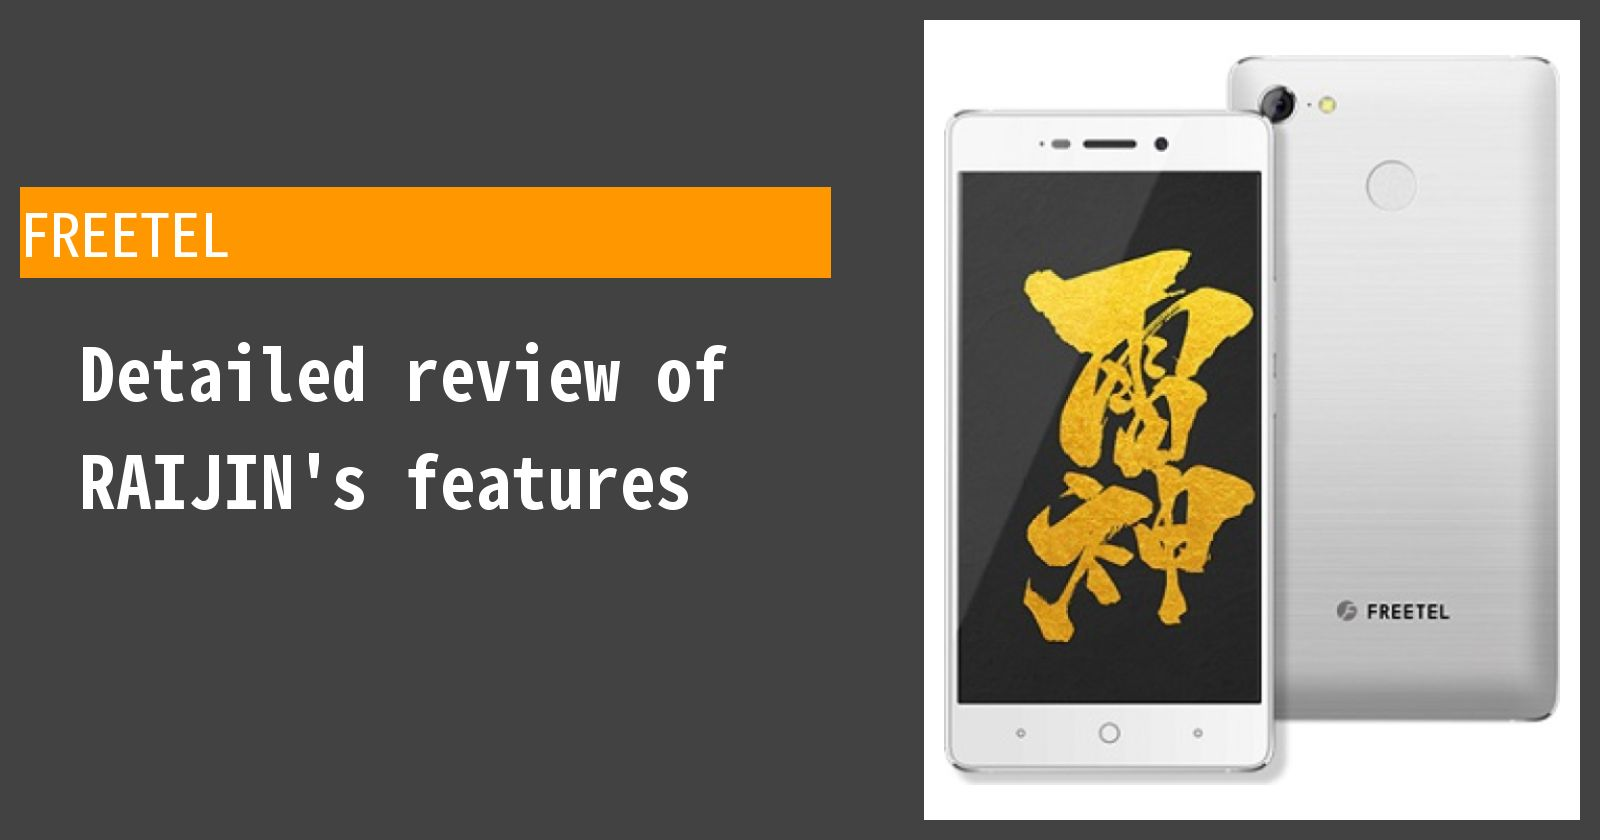 Detailed review of FREETEL RAIJIN's features